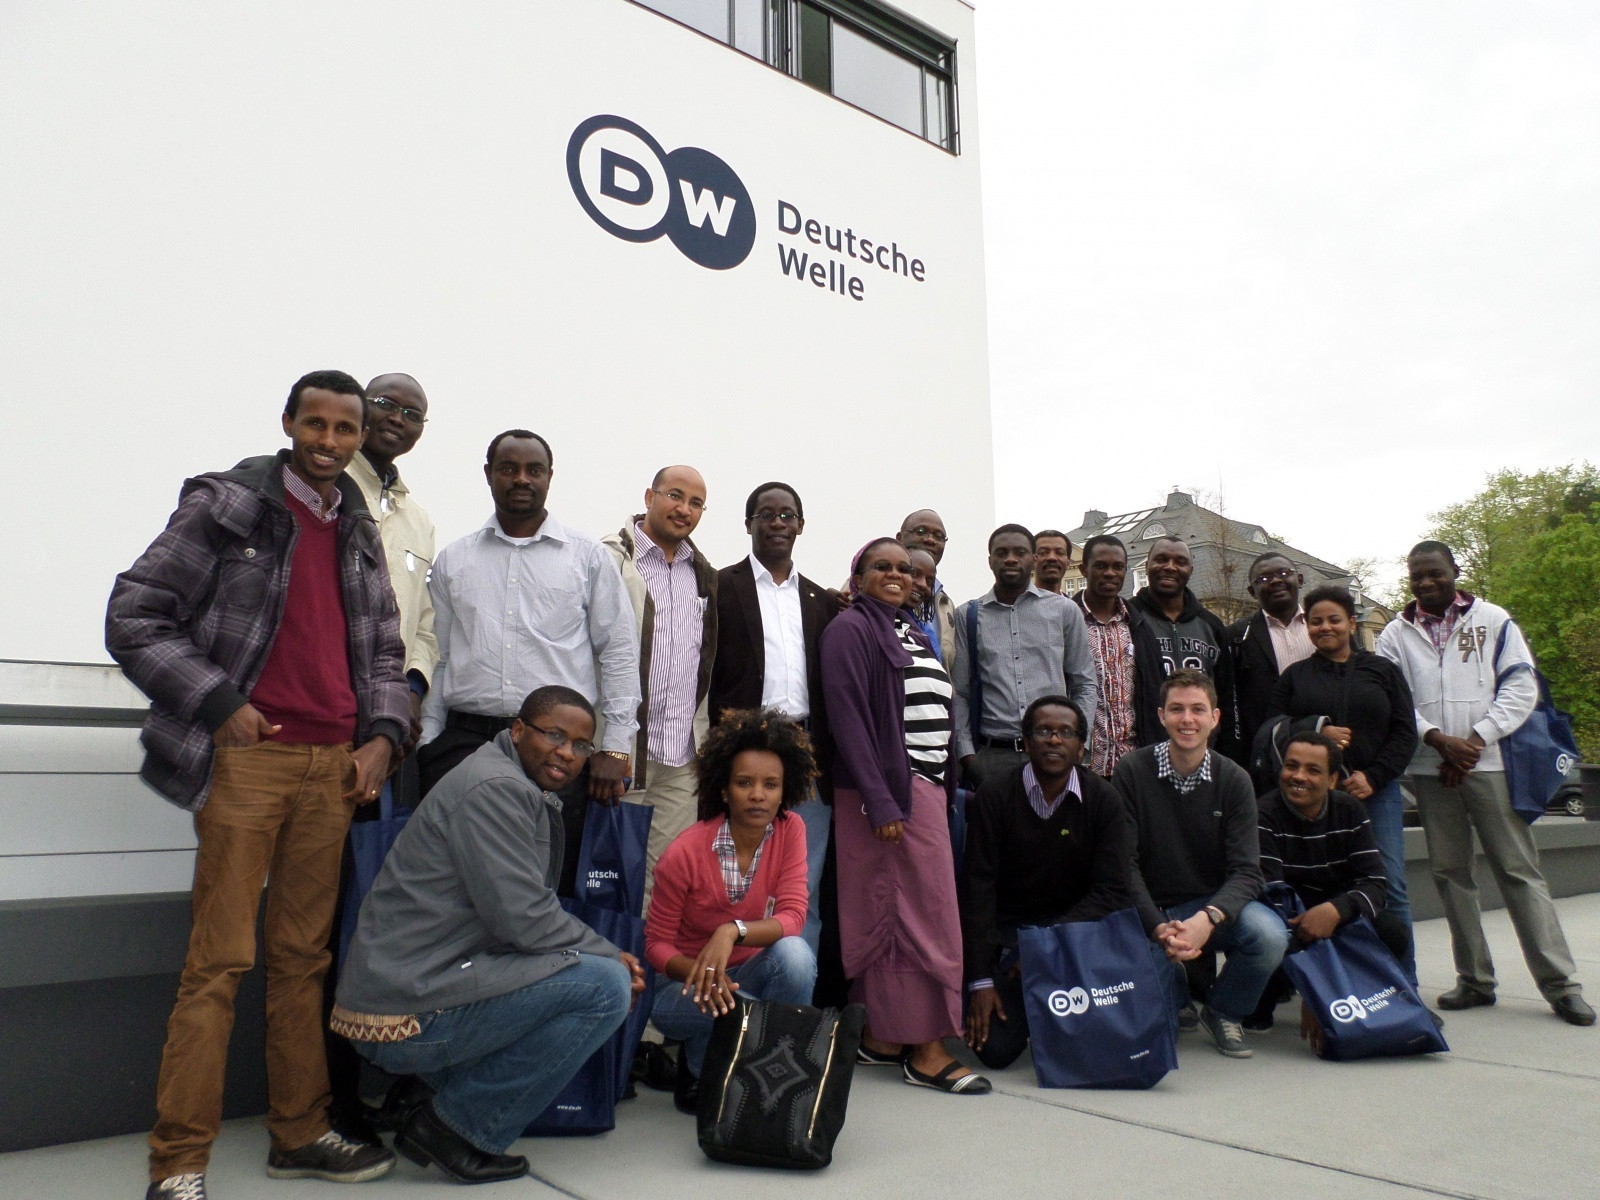 AGGN visiting the Deutsche Welle in Bonn/Germany